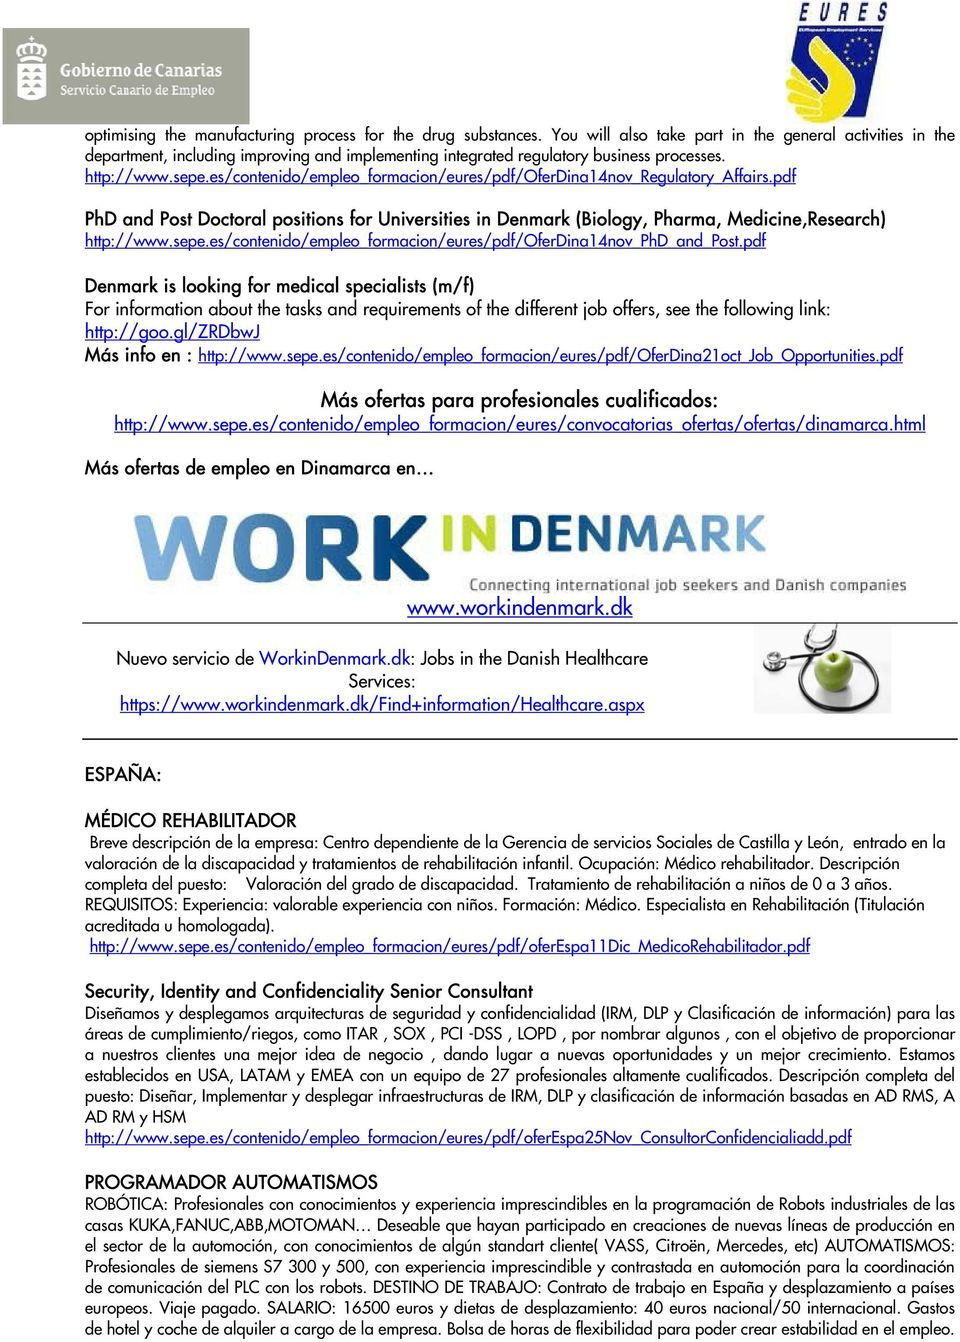 es/contenido/empleo_formacion/eures/pdf/oferdina14nov_regulatory_affairs.pdf PhD and Post Doctoral positions for Universities in Denmark (Biology, Pharma, Medicine,Research) http://www.sepe.